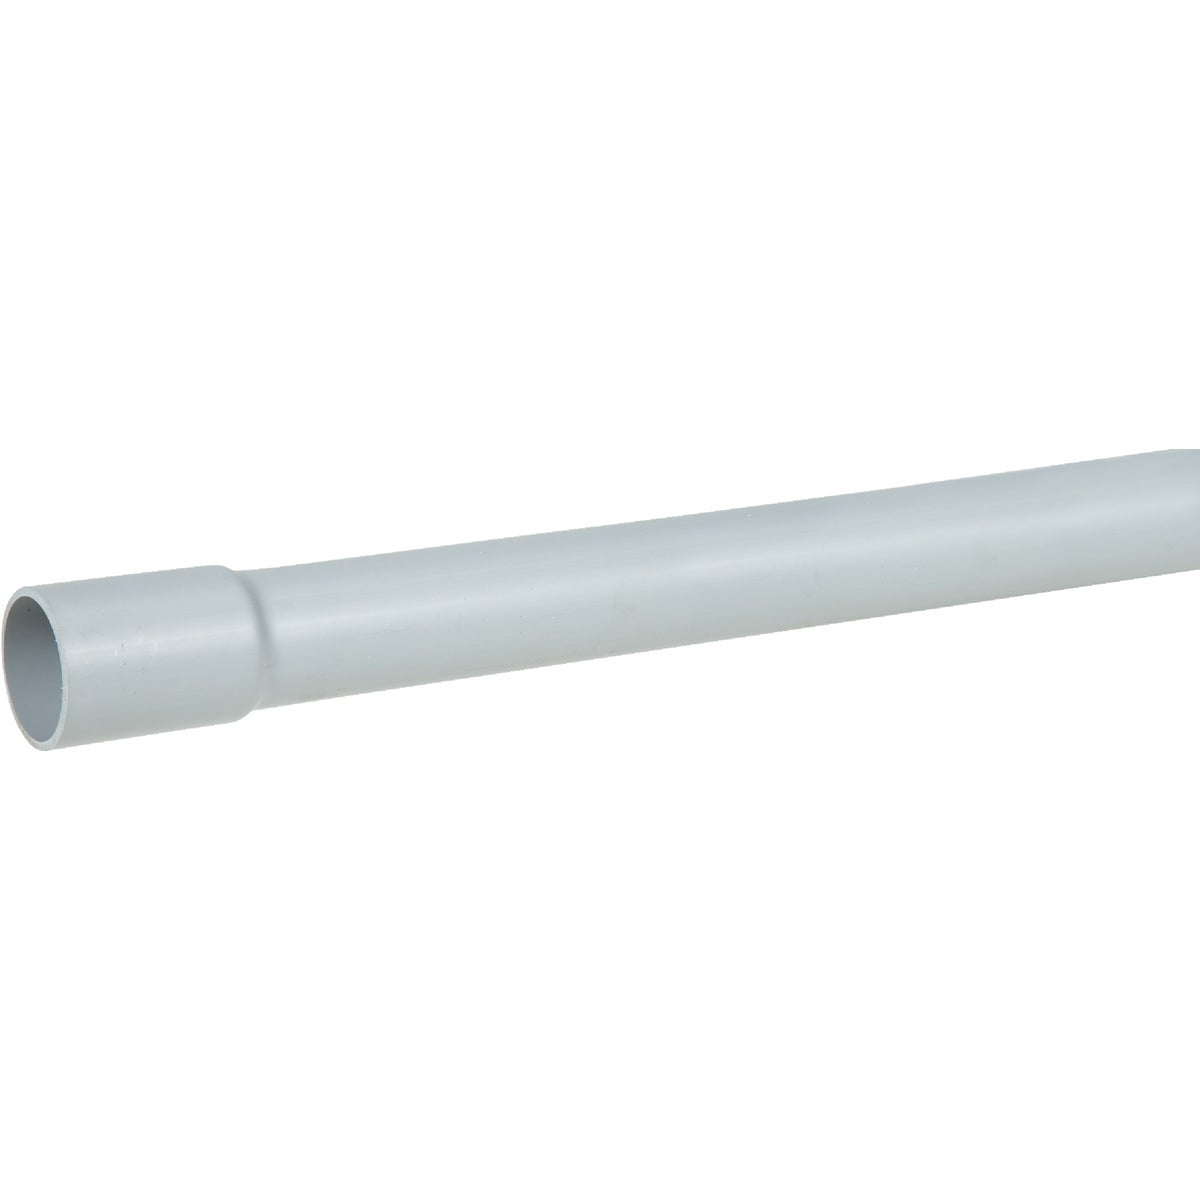 "2"" SCH40 10' CONDUIT - 49011-010 by Prime Conduit"